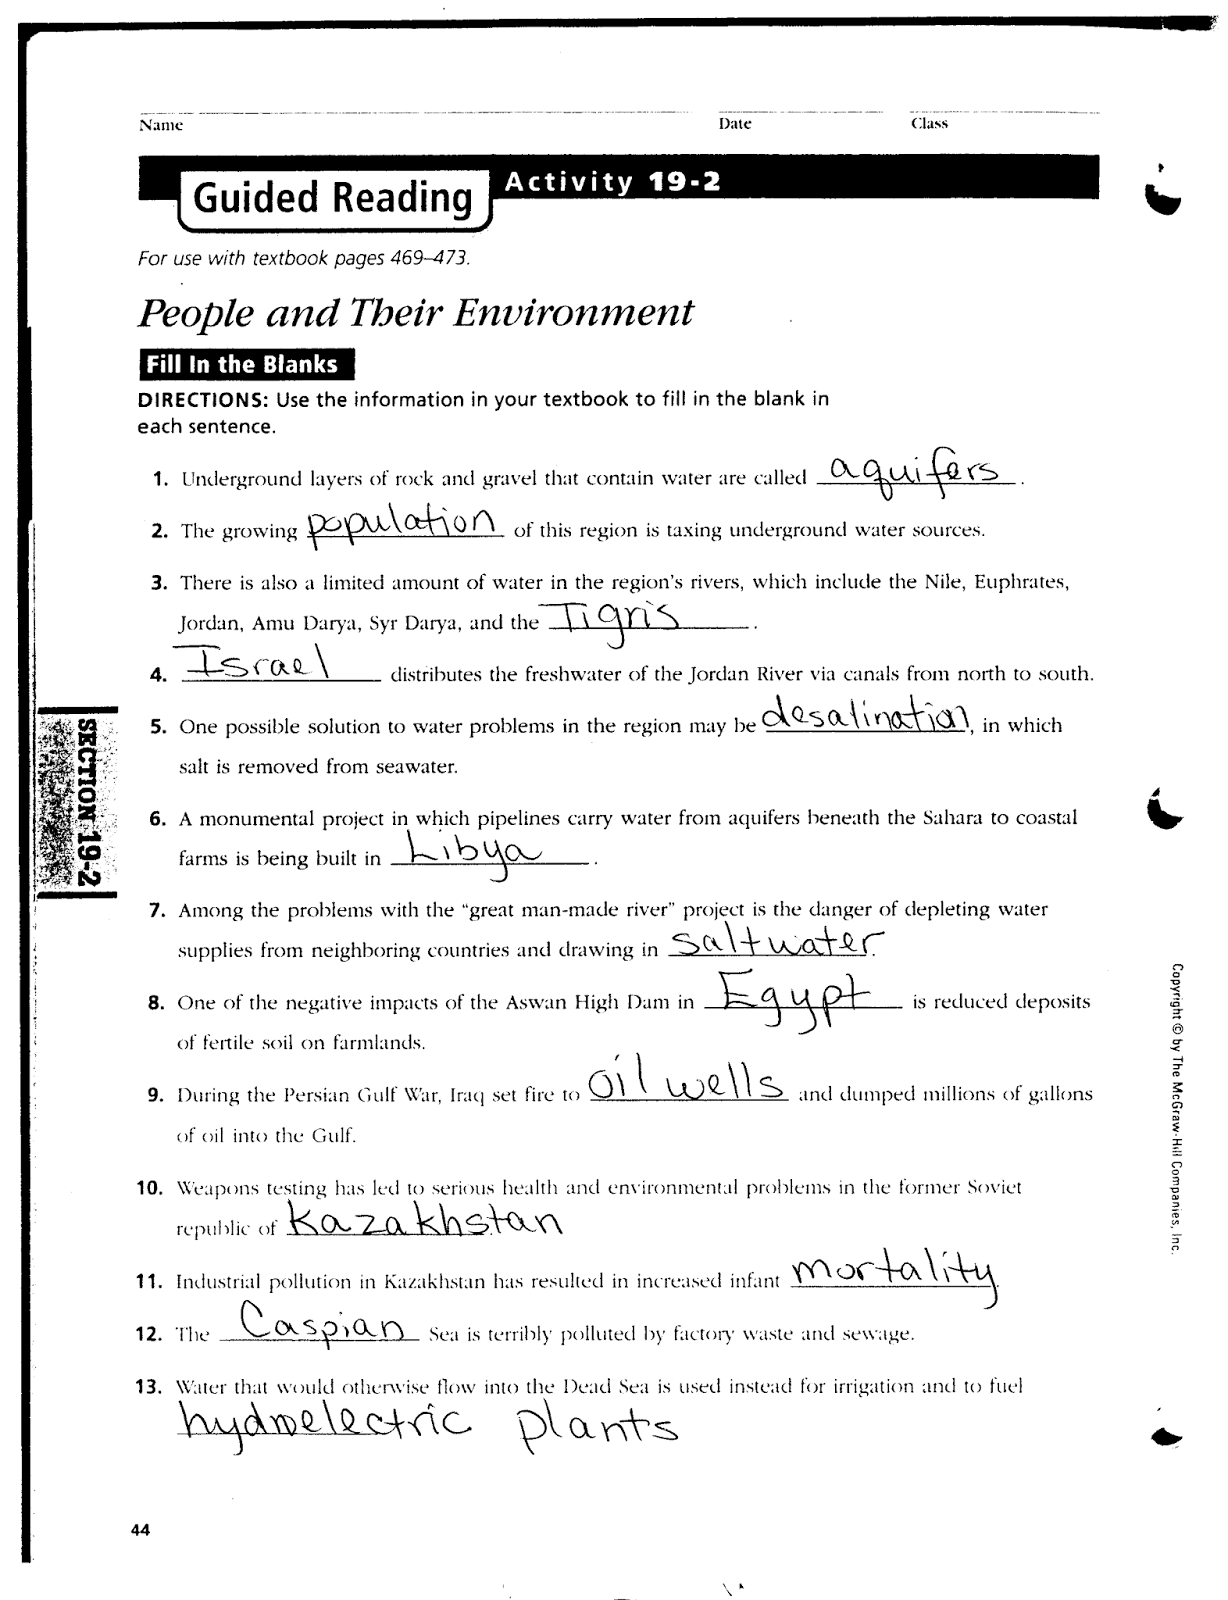 mr e s world geography page world geography chapter 19 north rh acewg blogspot com guided reading activity 19-2 answers guided reading activity 19-2 us history answers